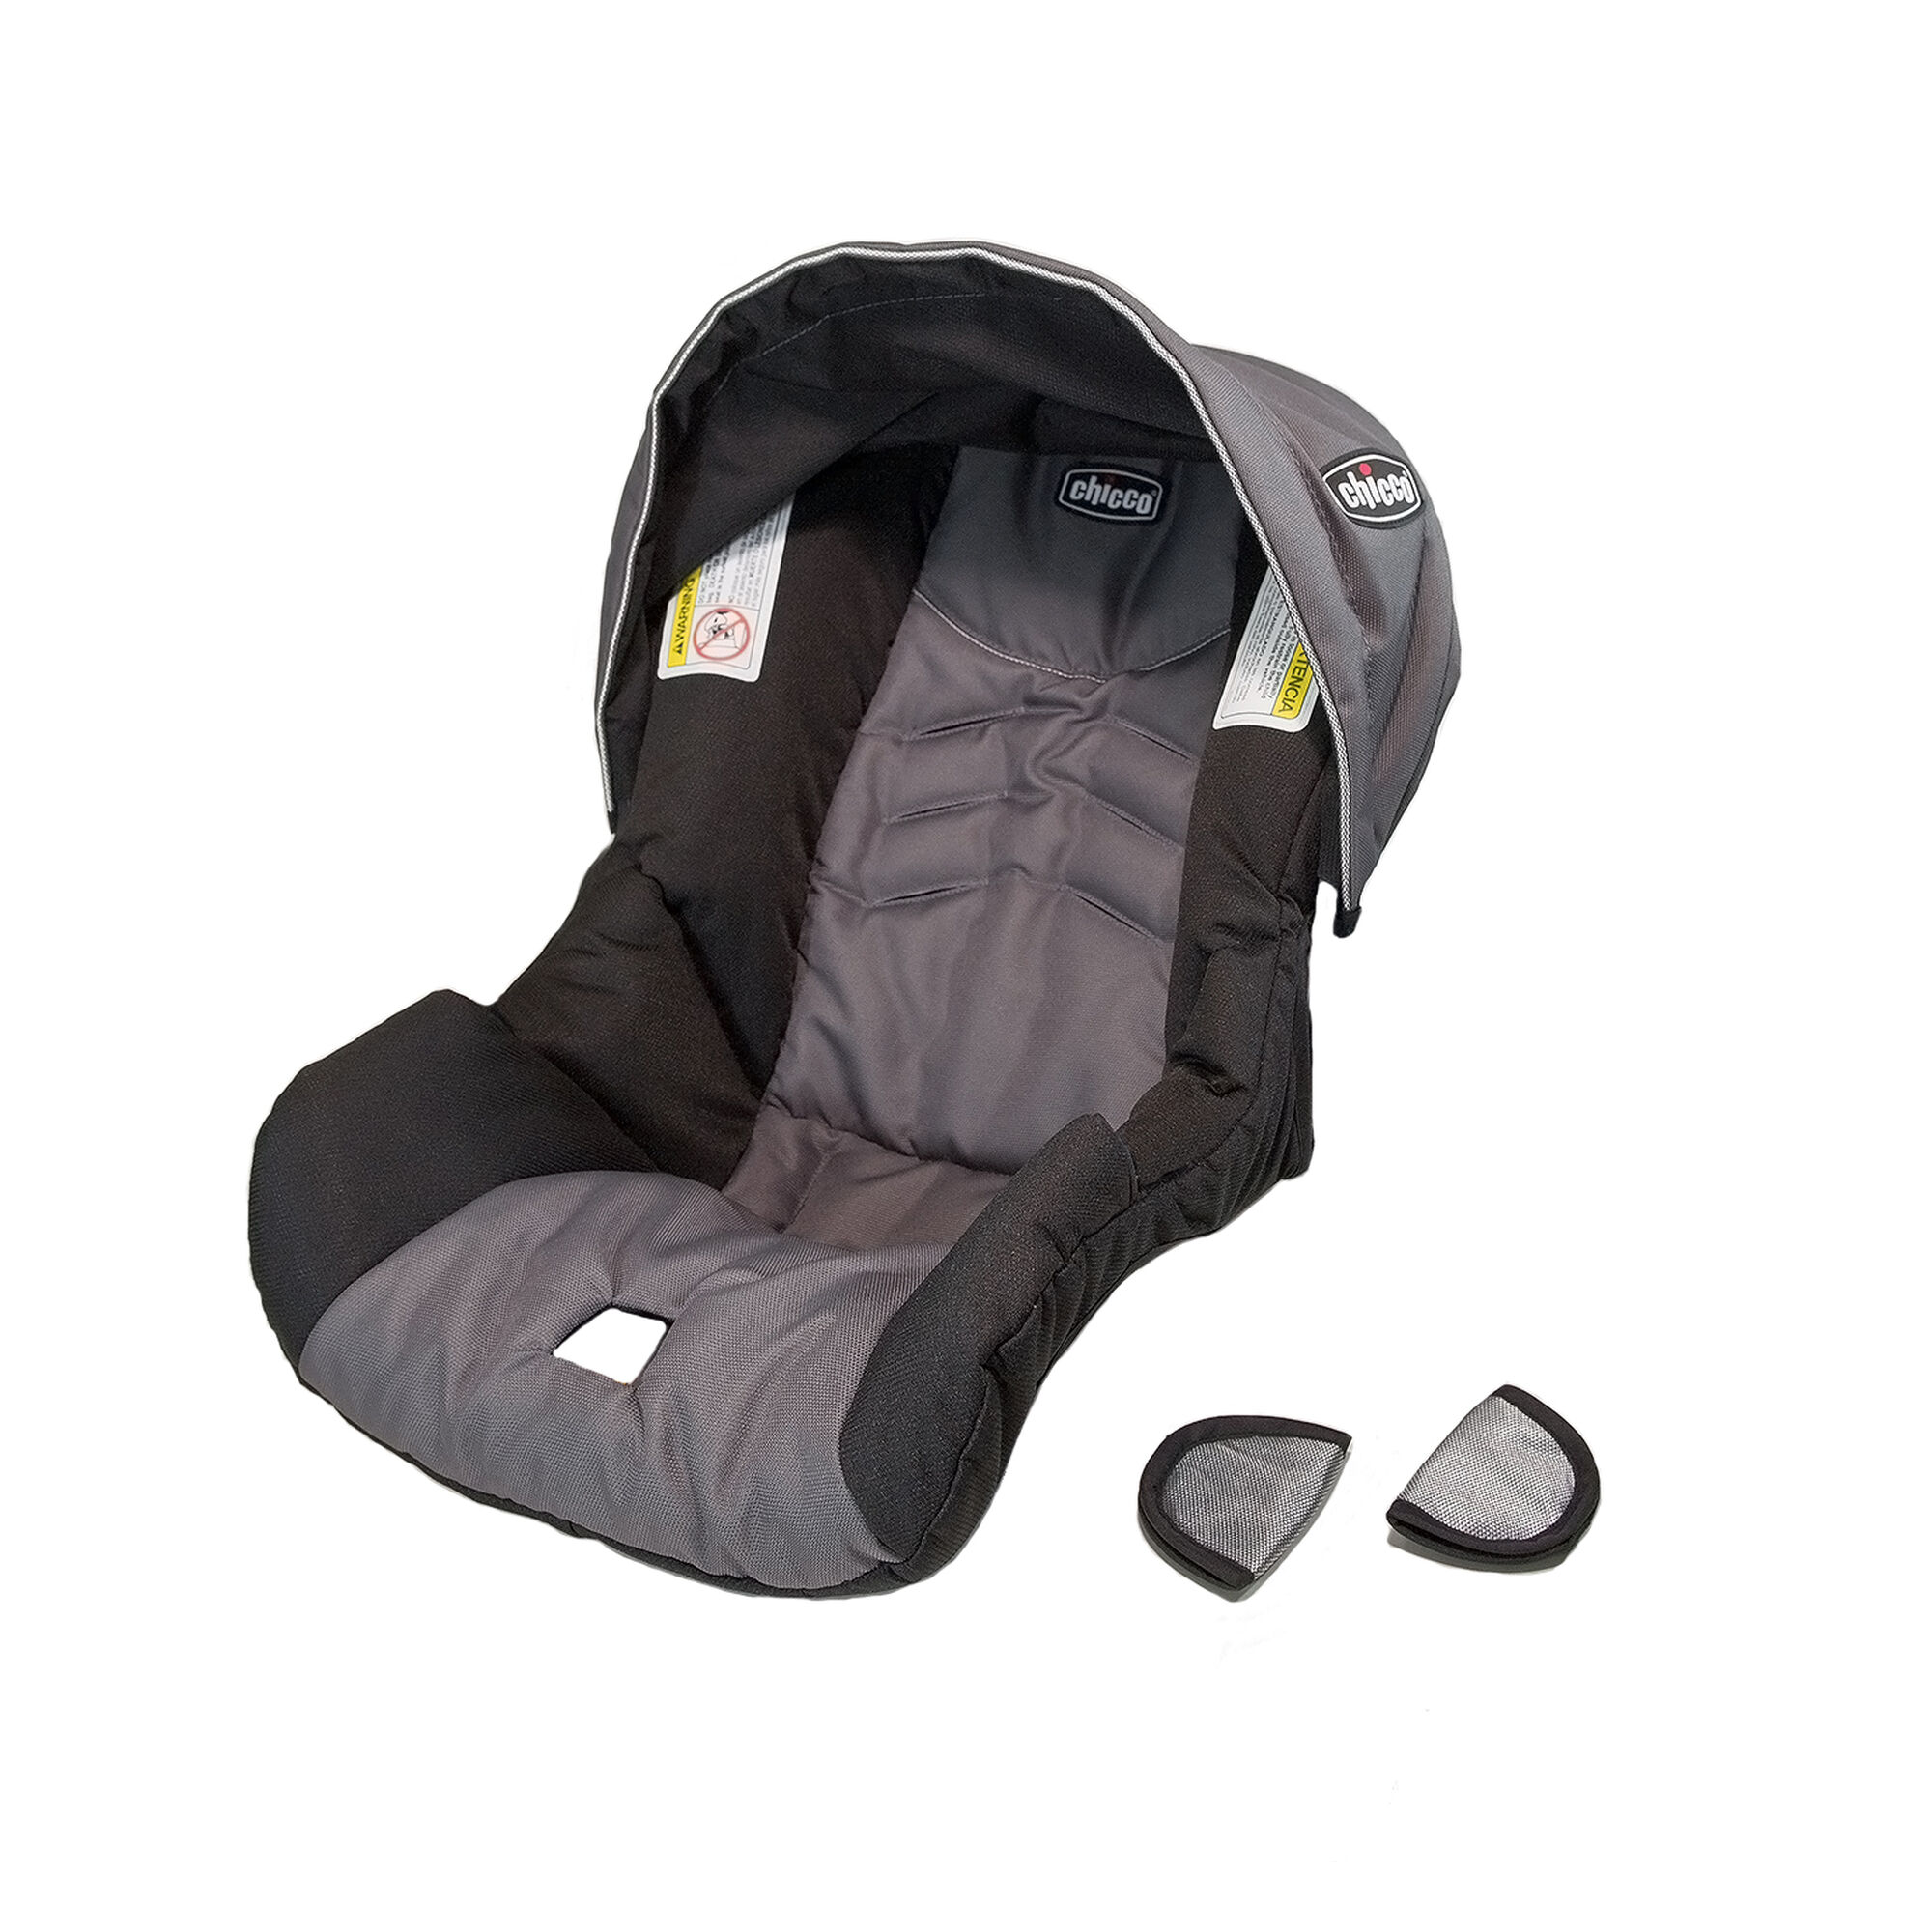 graco infant car seat cover replacement instructions